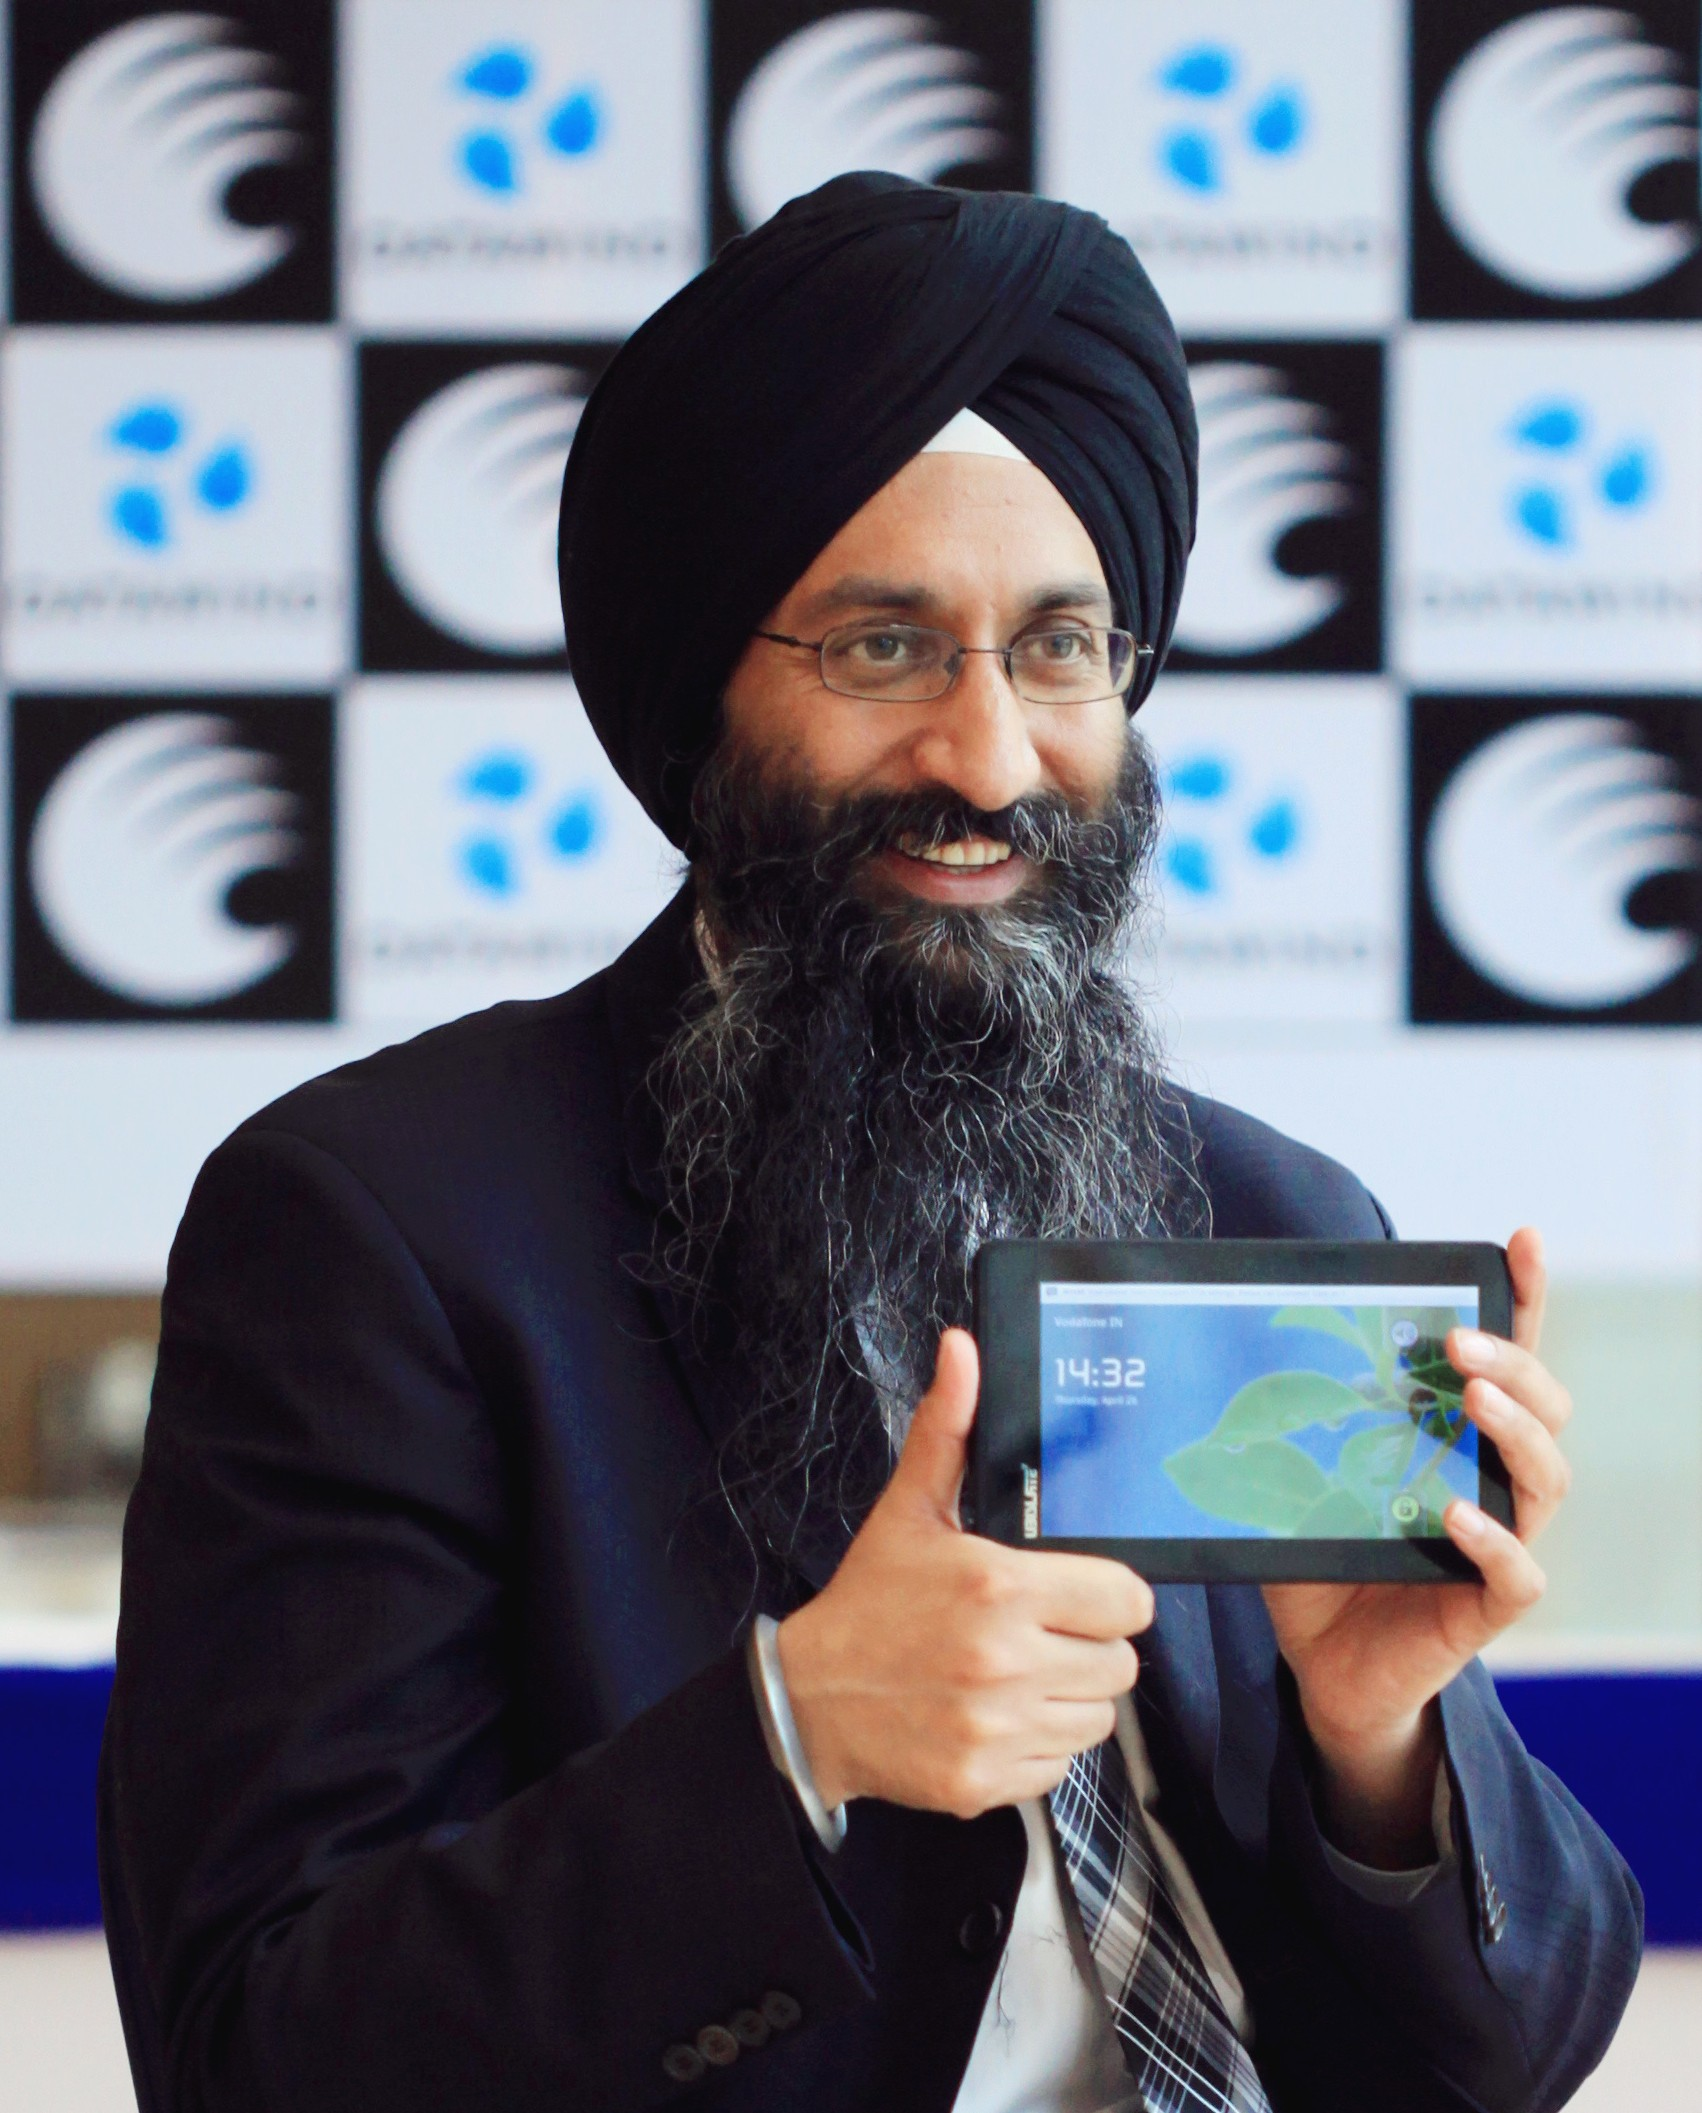 DataWind Named to MIT Technology Review's2014 50 Smartest Companies List Recognizing World's Most Innovative Companies